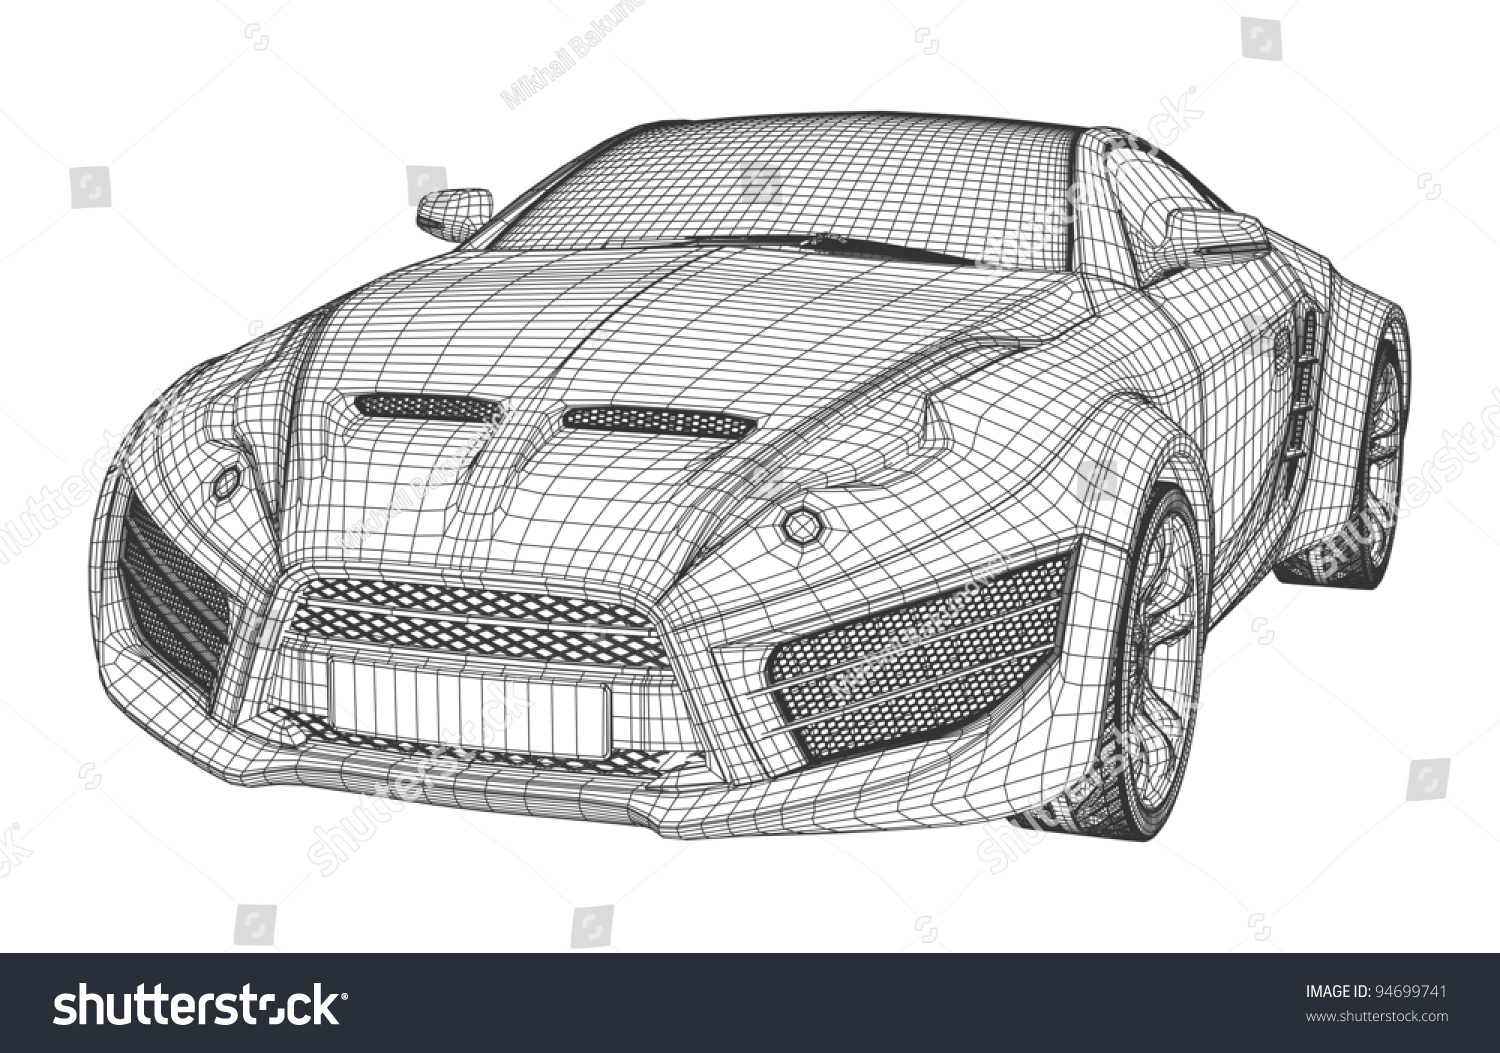 Sports Car Blueprint Non Branded Concept Stock Vector 94699741 ...